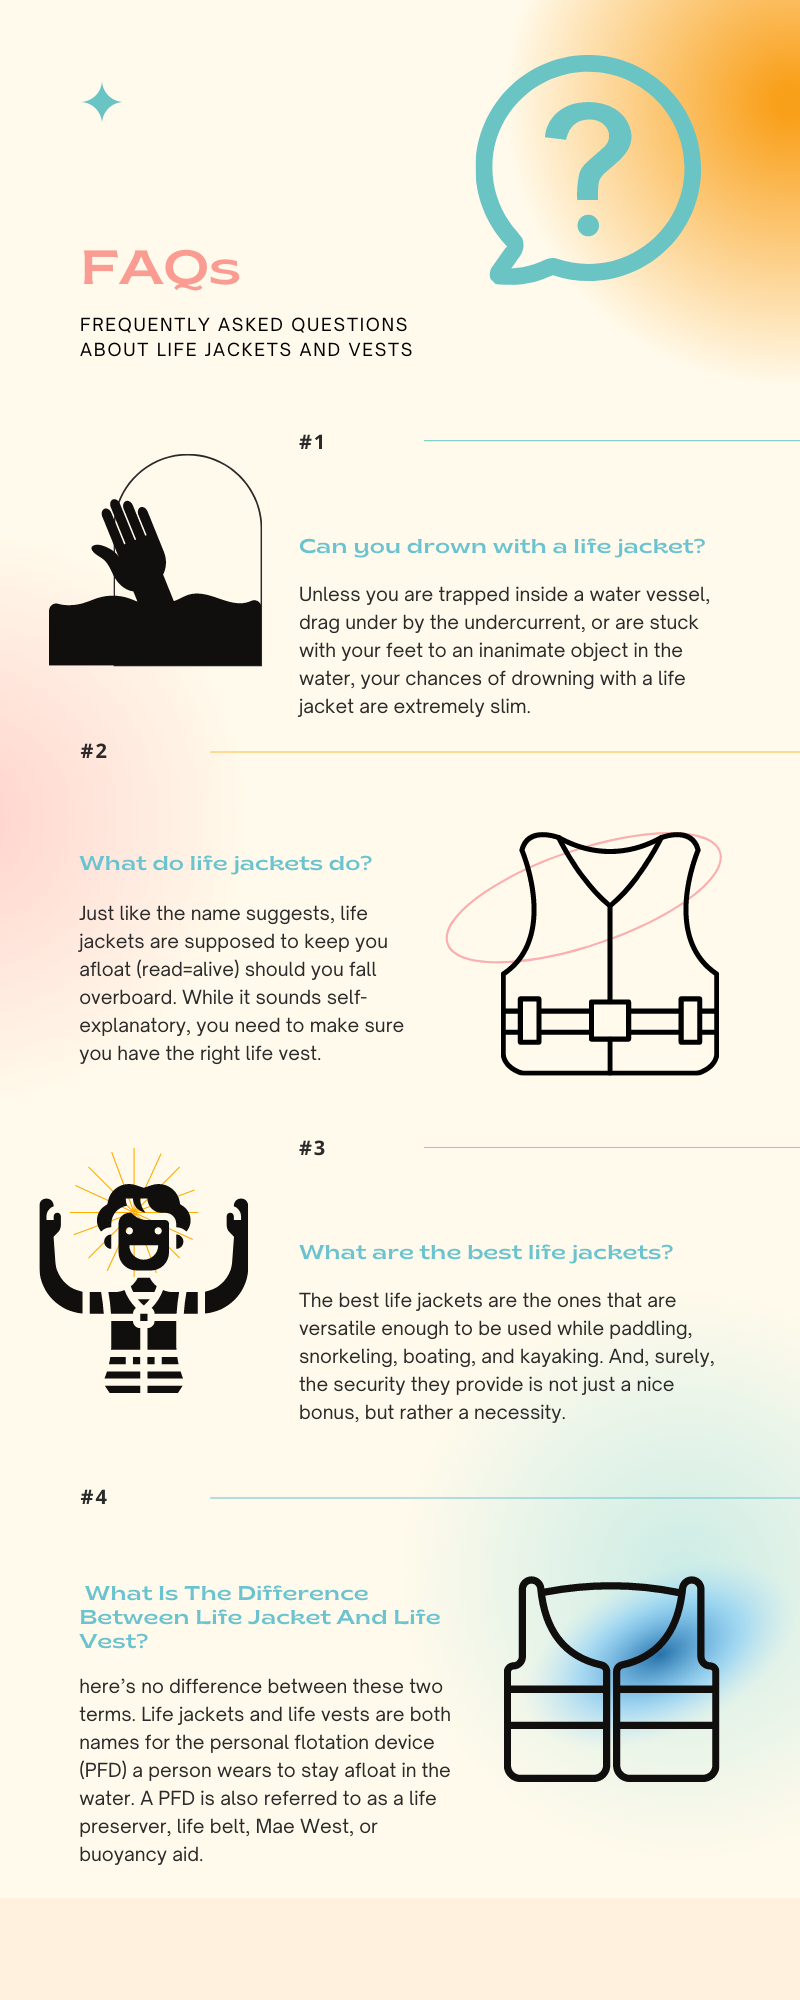 FAQs about life jackets and vests